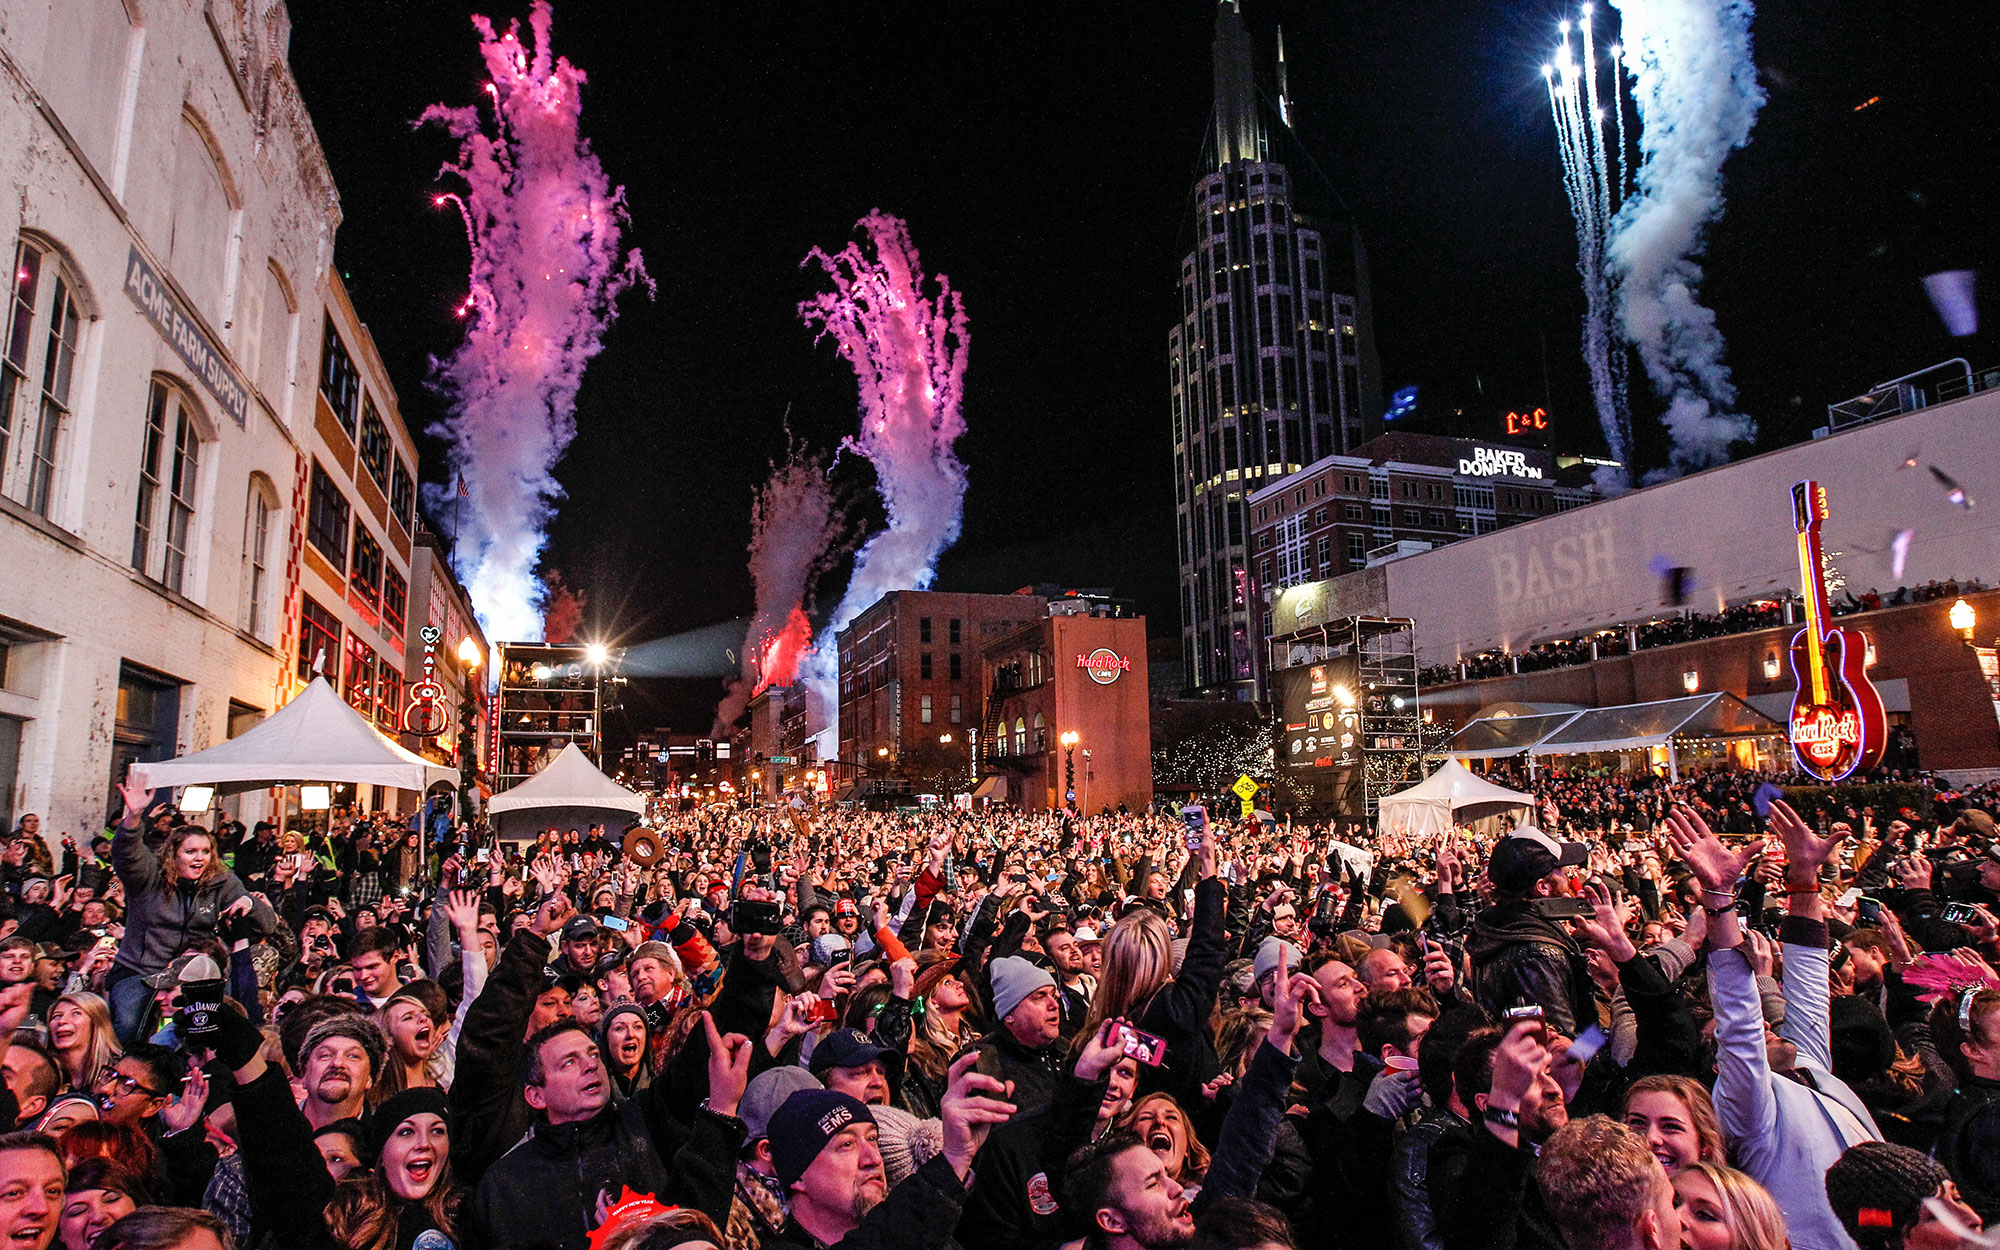 New Year's Eve in Nashville